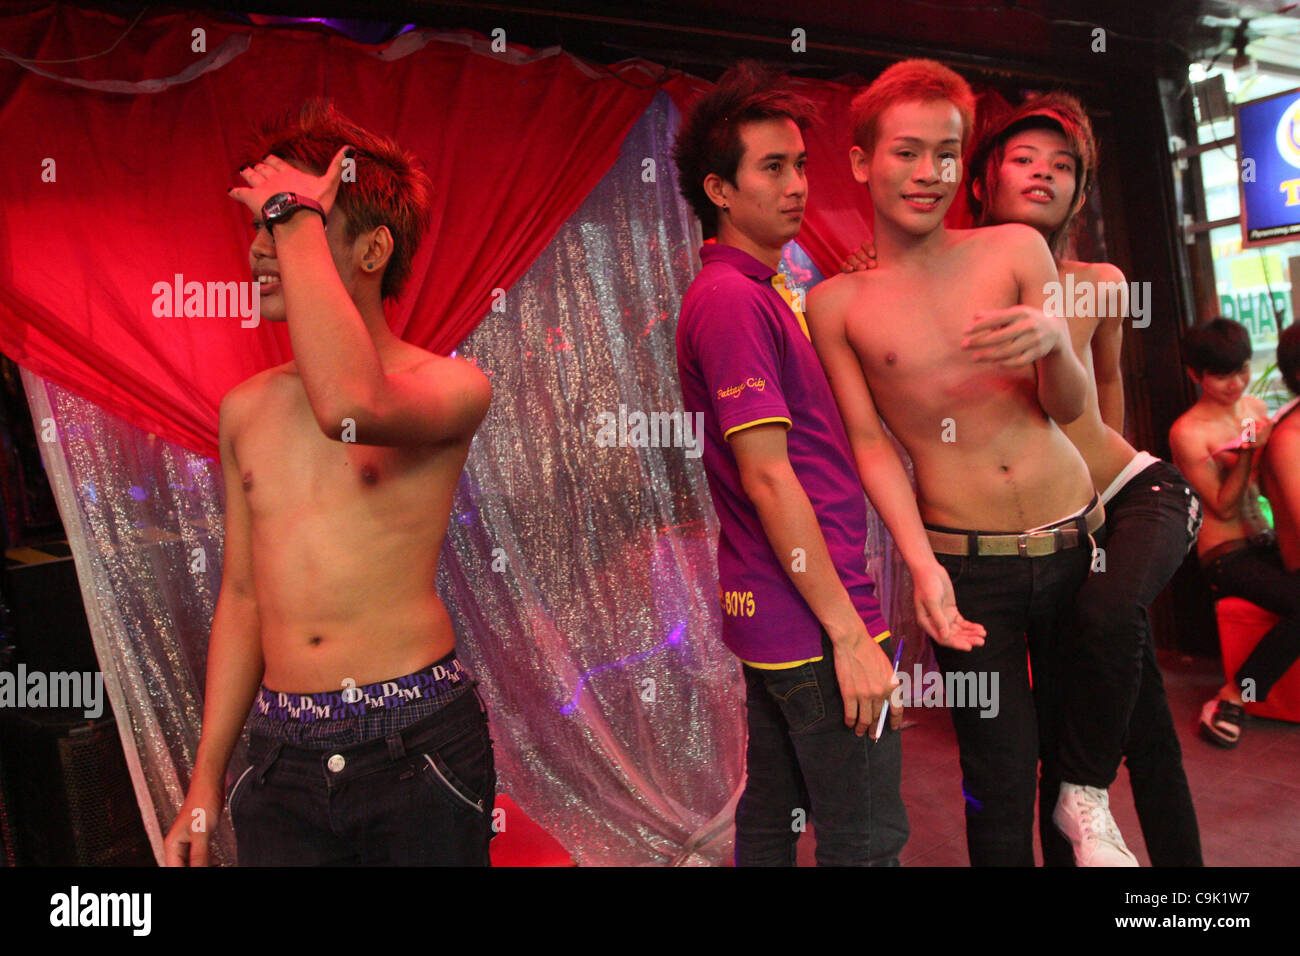 Thailands Sex Idustry Walking Street Of Pattaya Where Go Go Bars Gay Clubs Striptease Shows Are Offered For Tourists